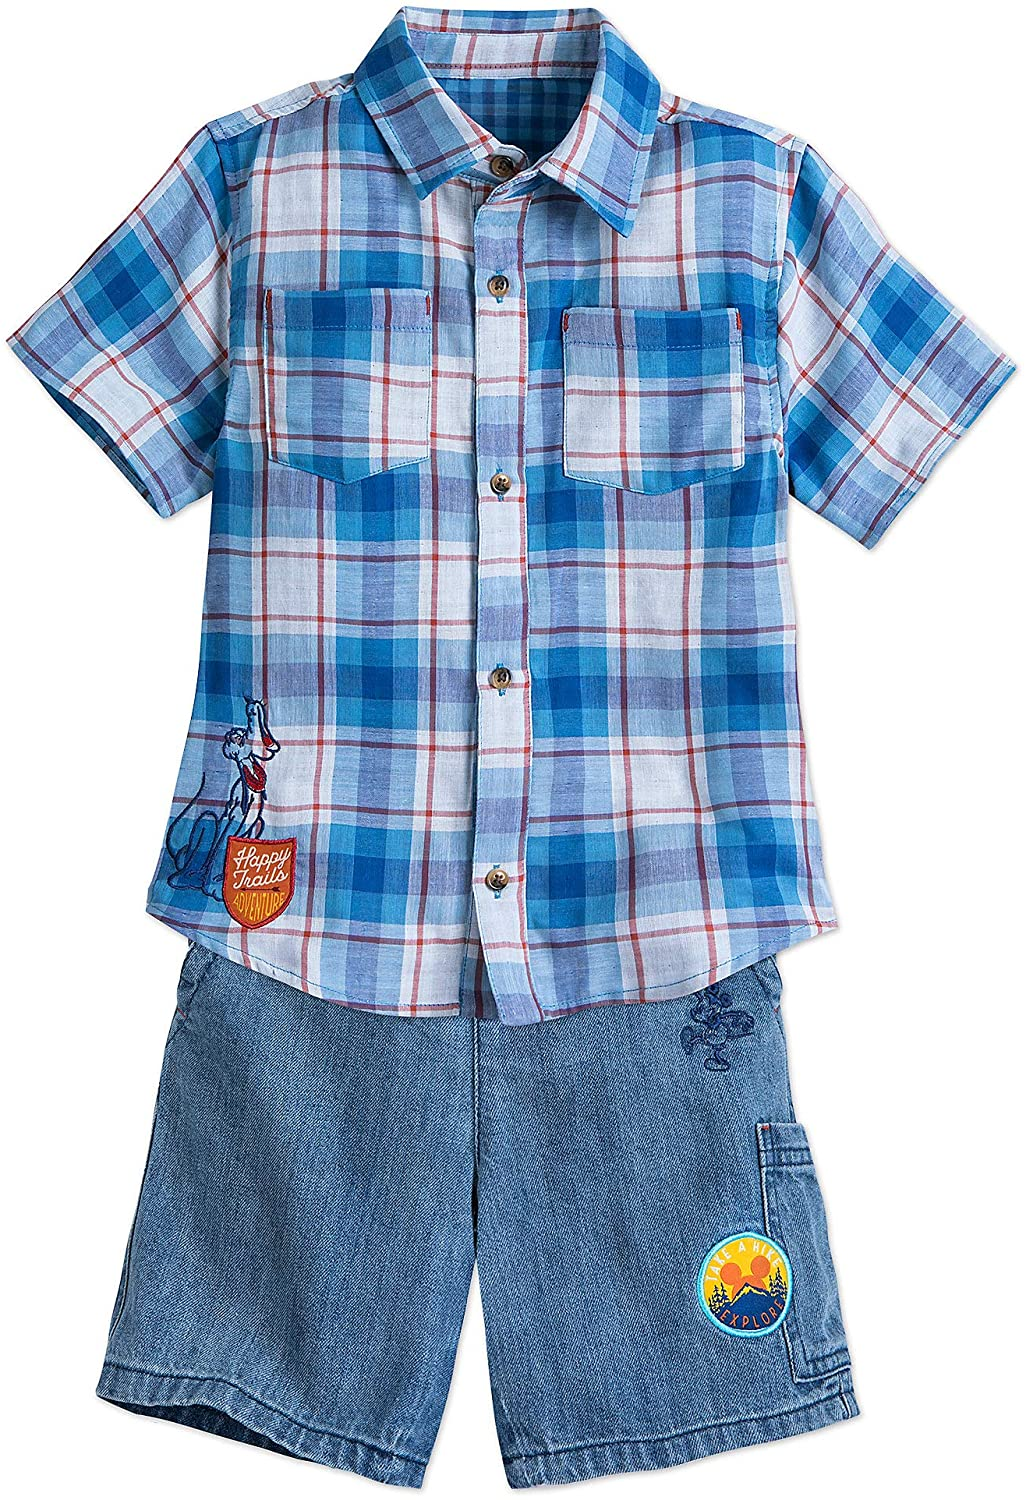 Disney Mickey Mouse Short Set for Boys Blue